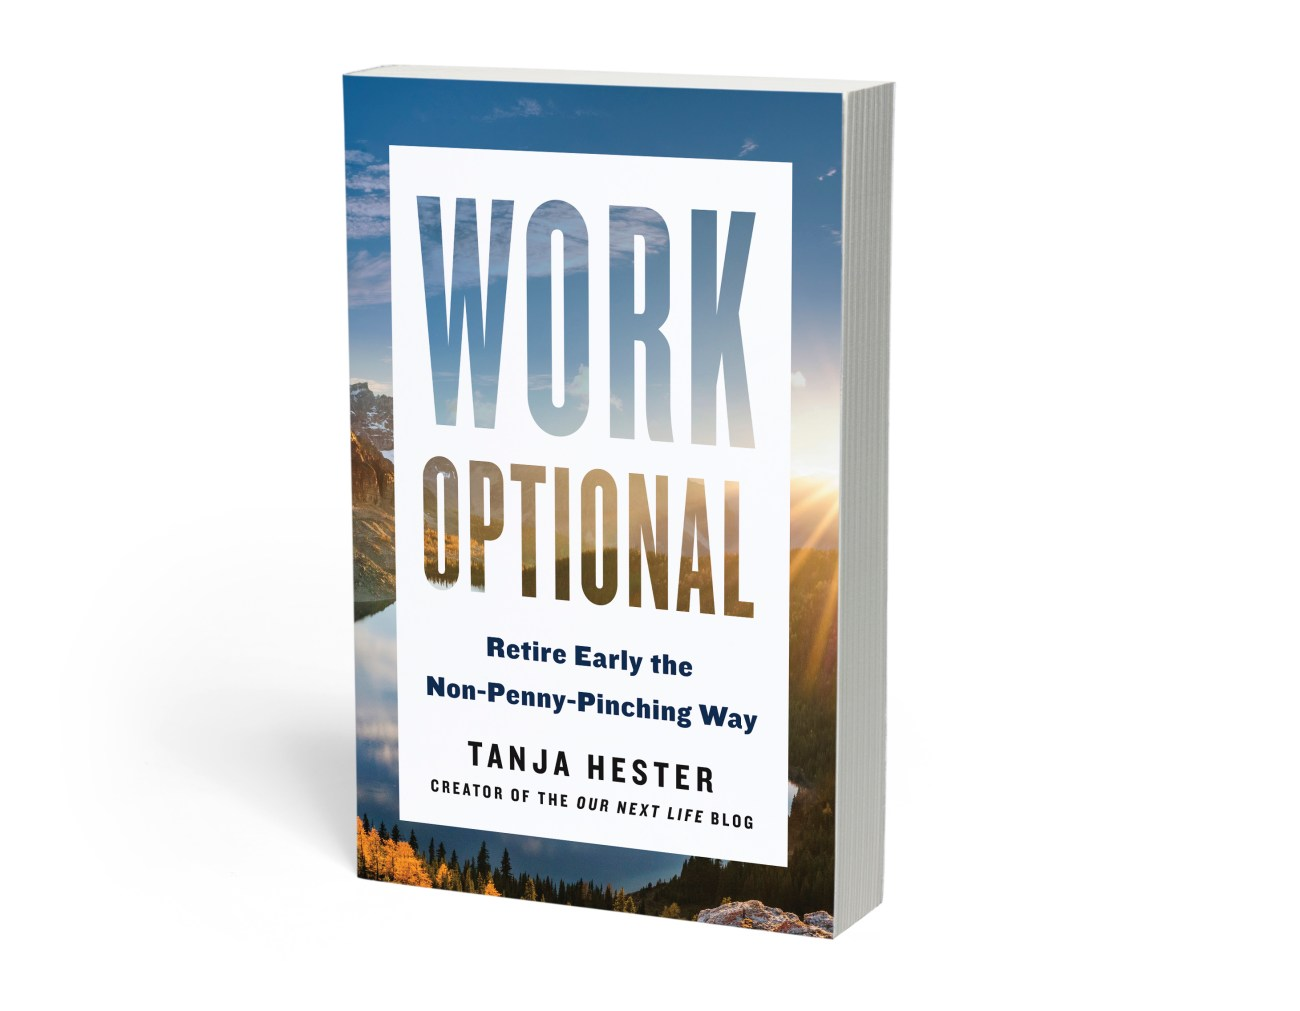 WORK OPTIONAL: Retire Early the Non-Penny-Pinching Way – Our